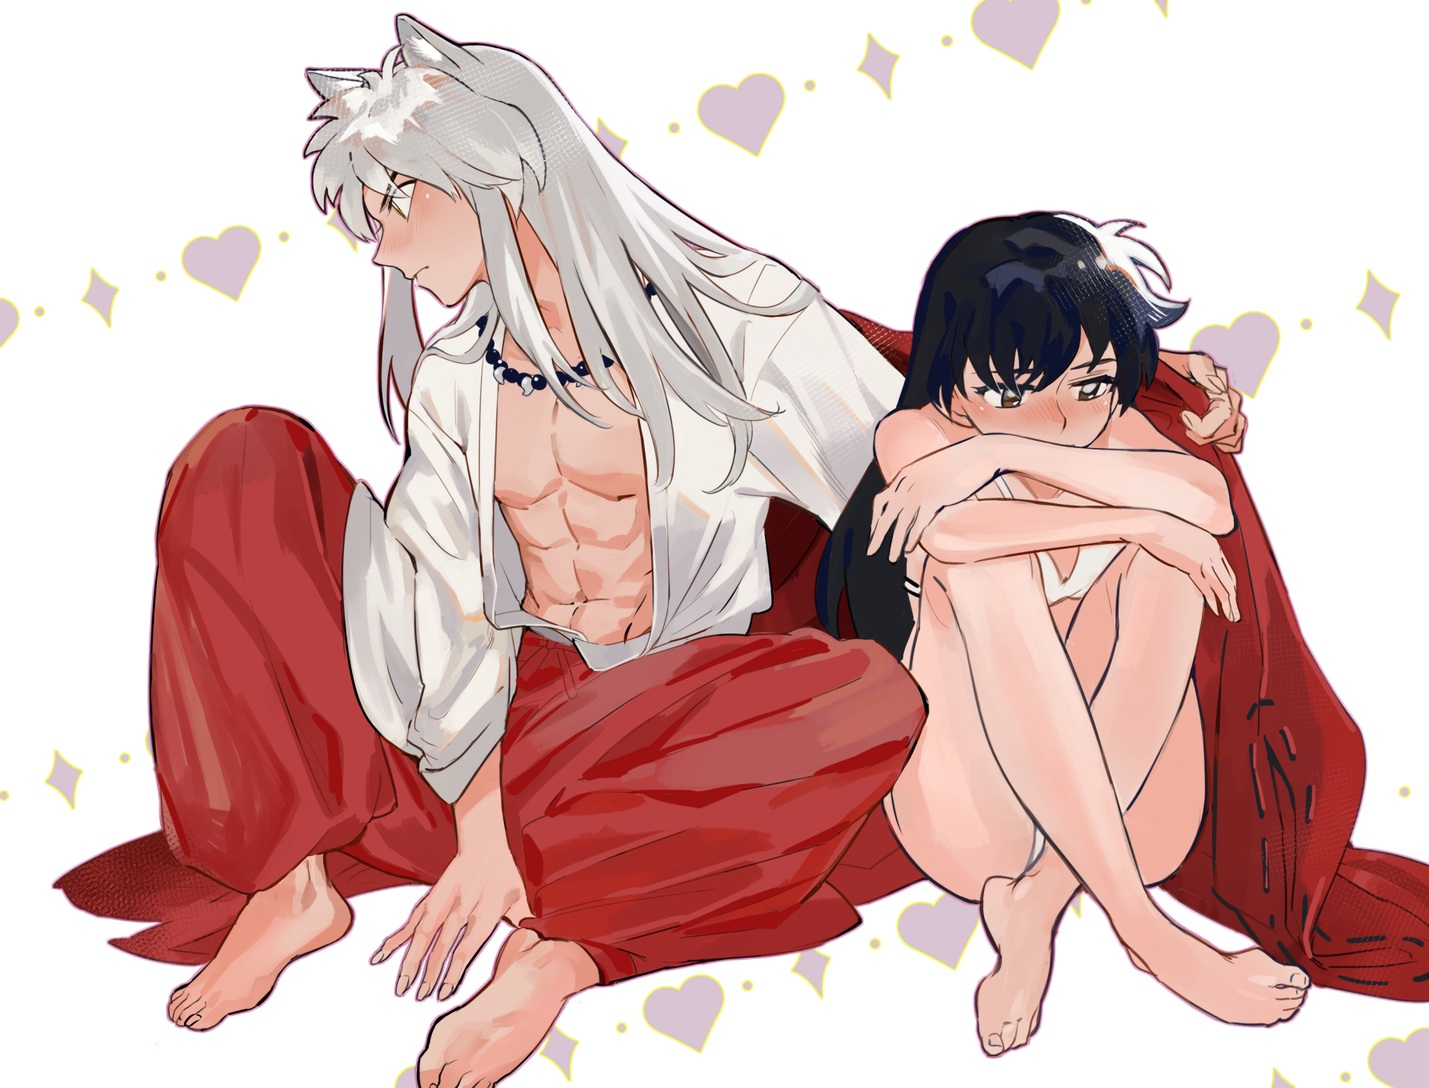 animal_ears barefoot black_hair blush bra brown_eyes gray_hair gwillarmy heart higurashi_kagome inuyasha inuyasha_(character) japanese_clothes long_hair male necklace open_shirt red_eyes underwear waifu2x white